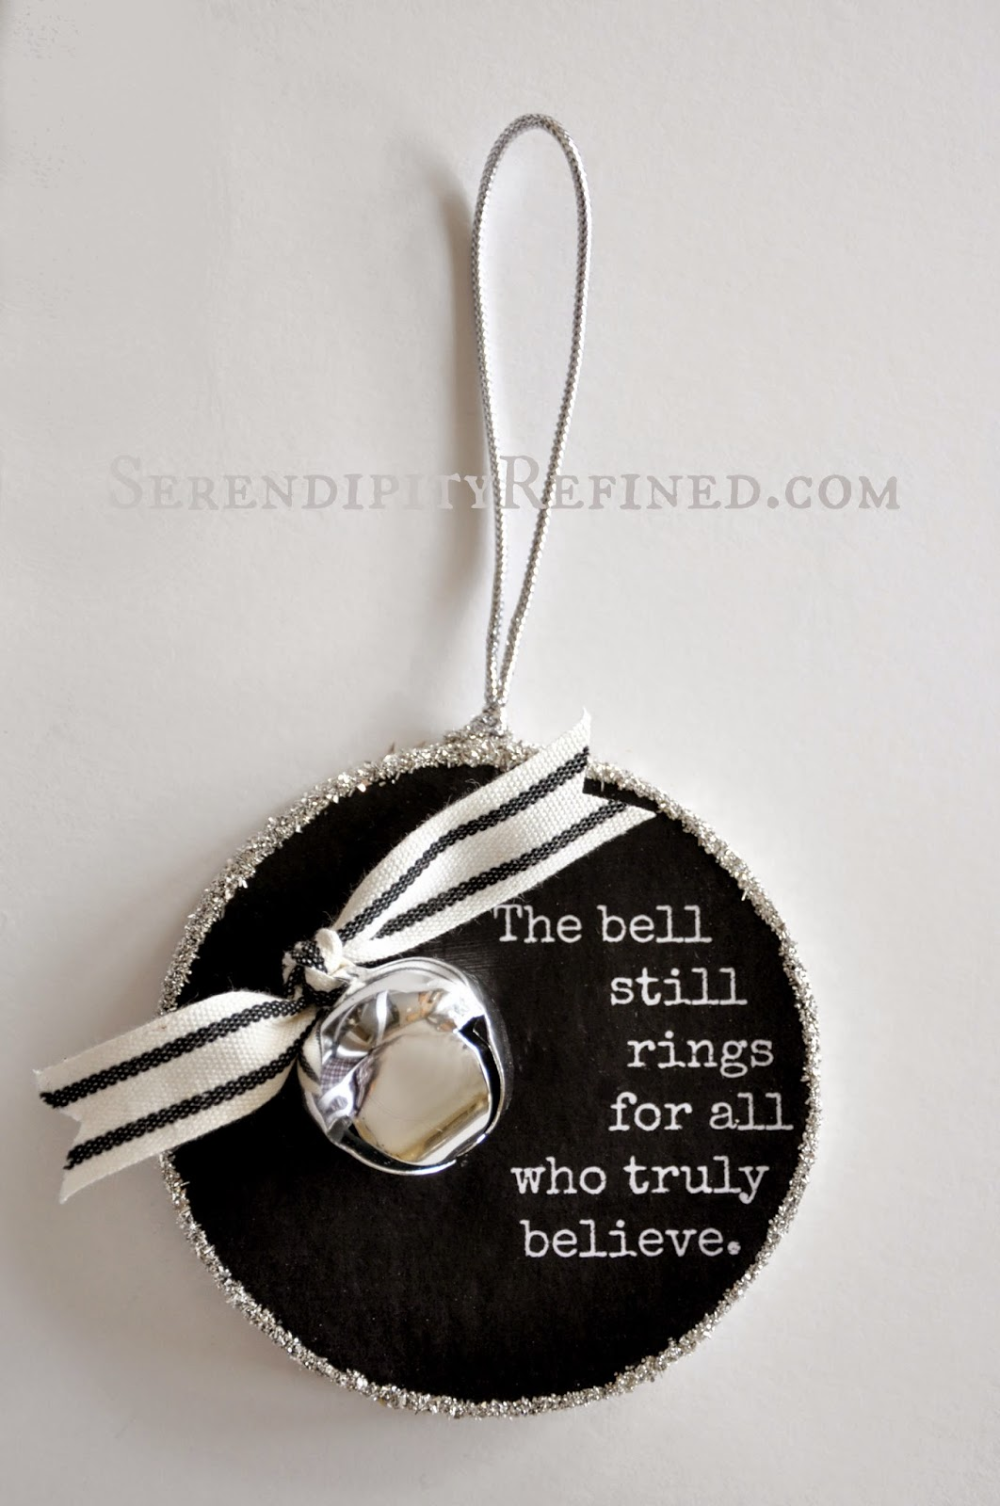 Serendipity Refined Blog Polar Express Bell Quote Ornament Ornament Day 7 Handmade Christmas Ornaments Christmas Ornaments Christmas Ornaments Homemade